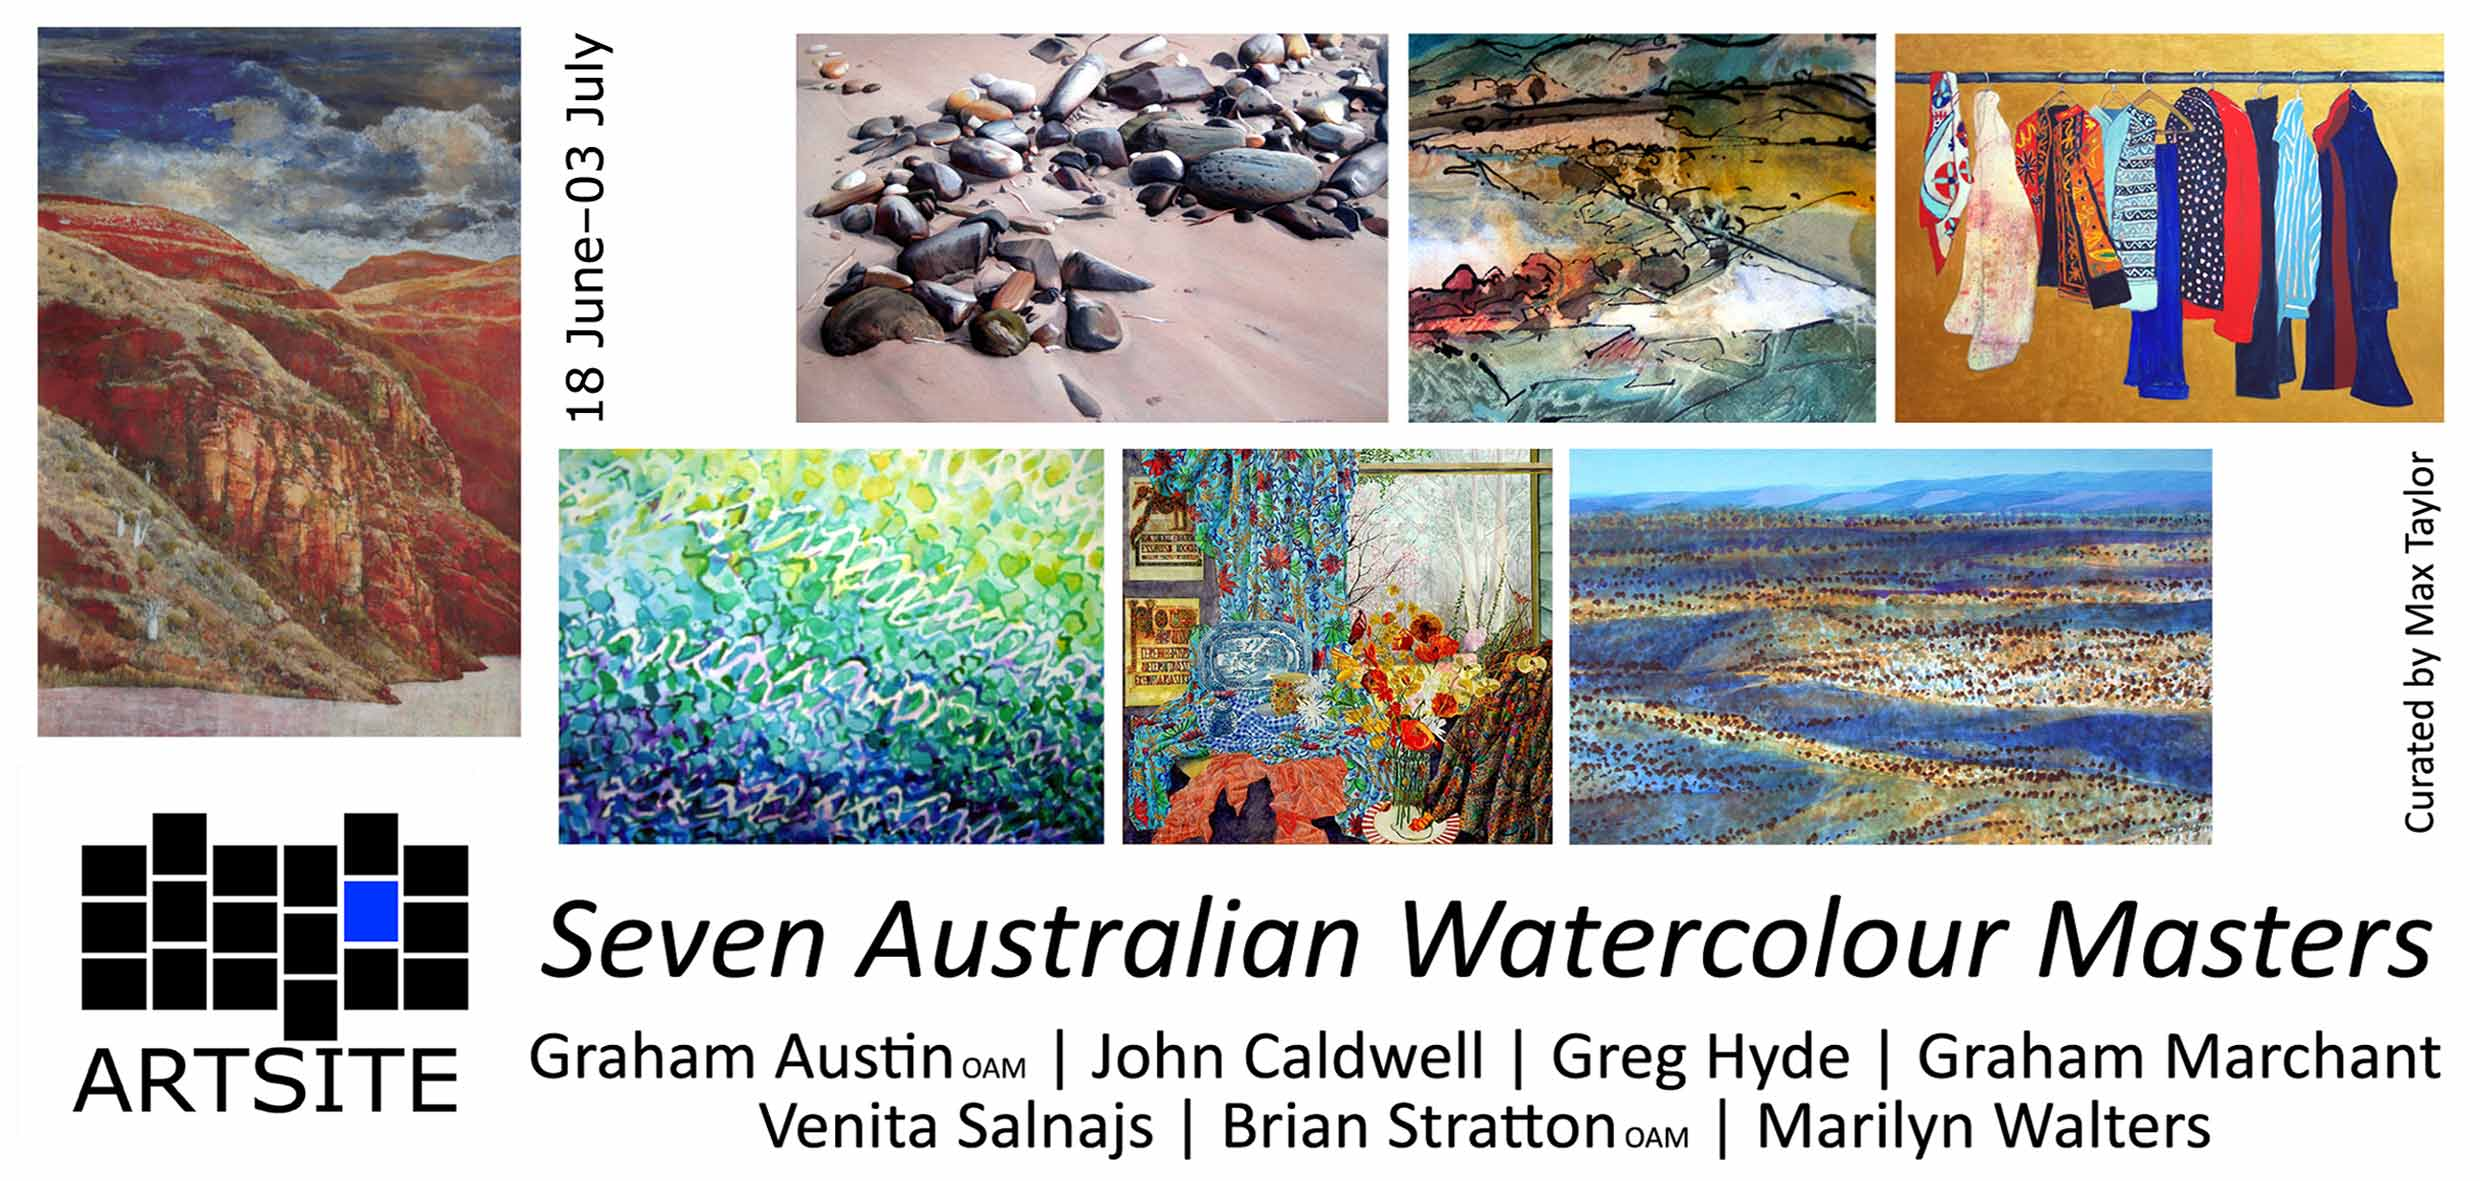 View Exhibition at Artsite Gallery, Sydney. 18 June - 03 July 2011: Seven Australian Watercolour Masters:Graham Austin, John Caldwell, Greg Hyde, Graham Marchant, Venita Salnajs, Brian Stratton, Marilyn Walters.